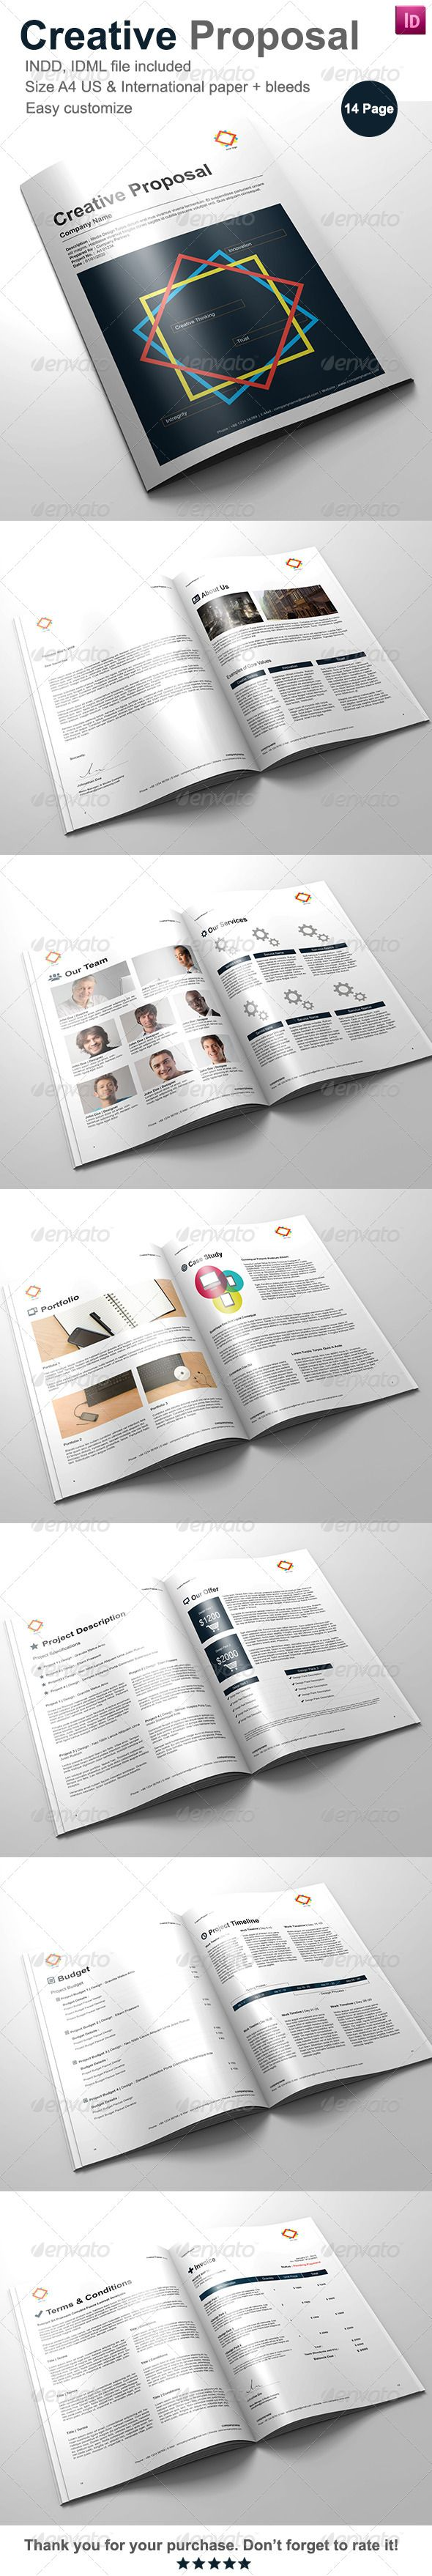 Commercial Proposal Format Amusing 504 Best Business Proposal Images On Pinterest  Proposal Templates .